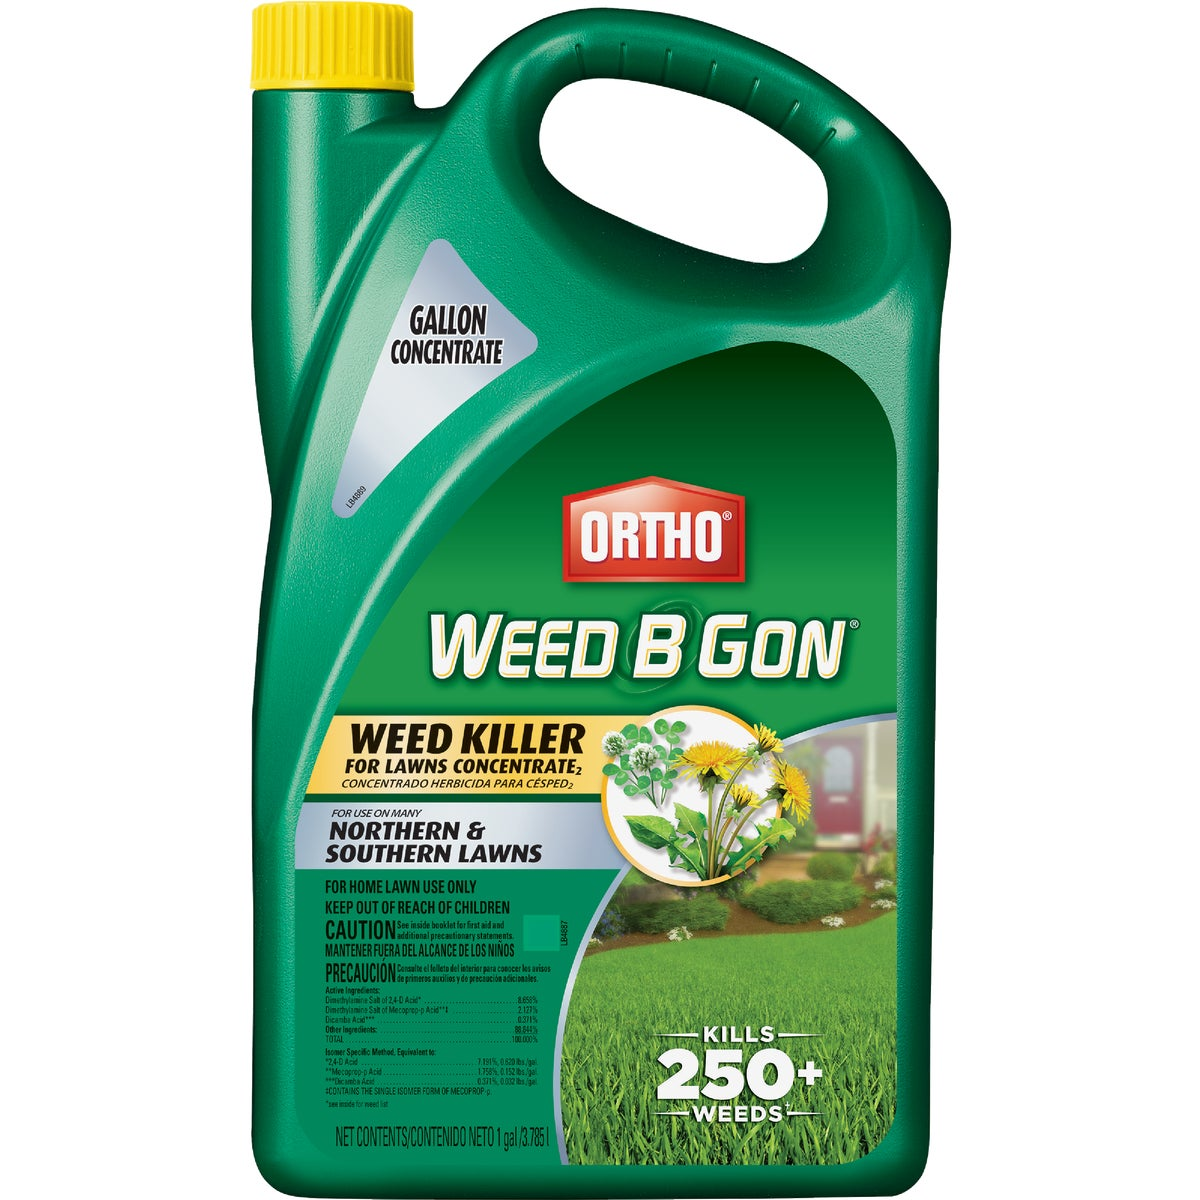 GAL CONC WEED B GON - 0408210 by Scotts Company